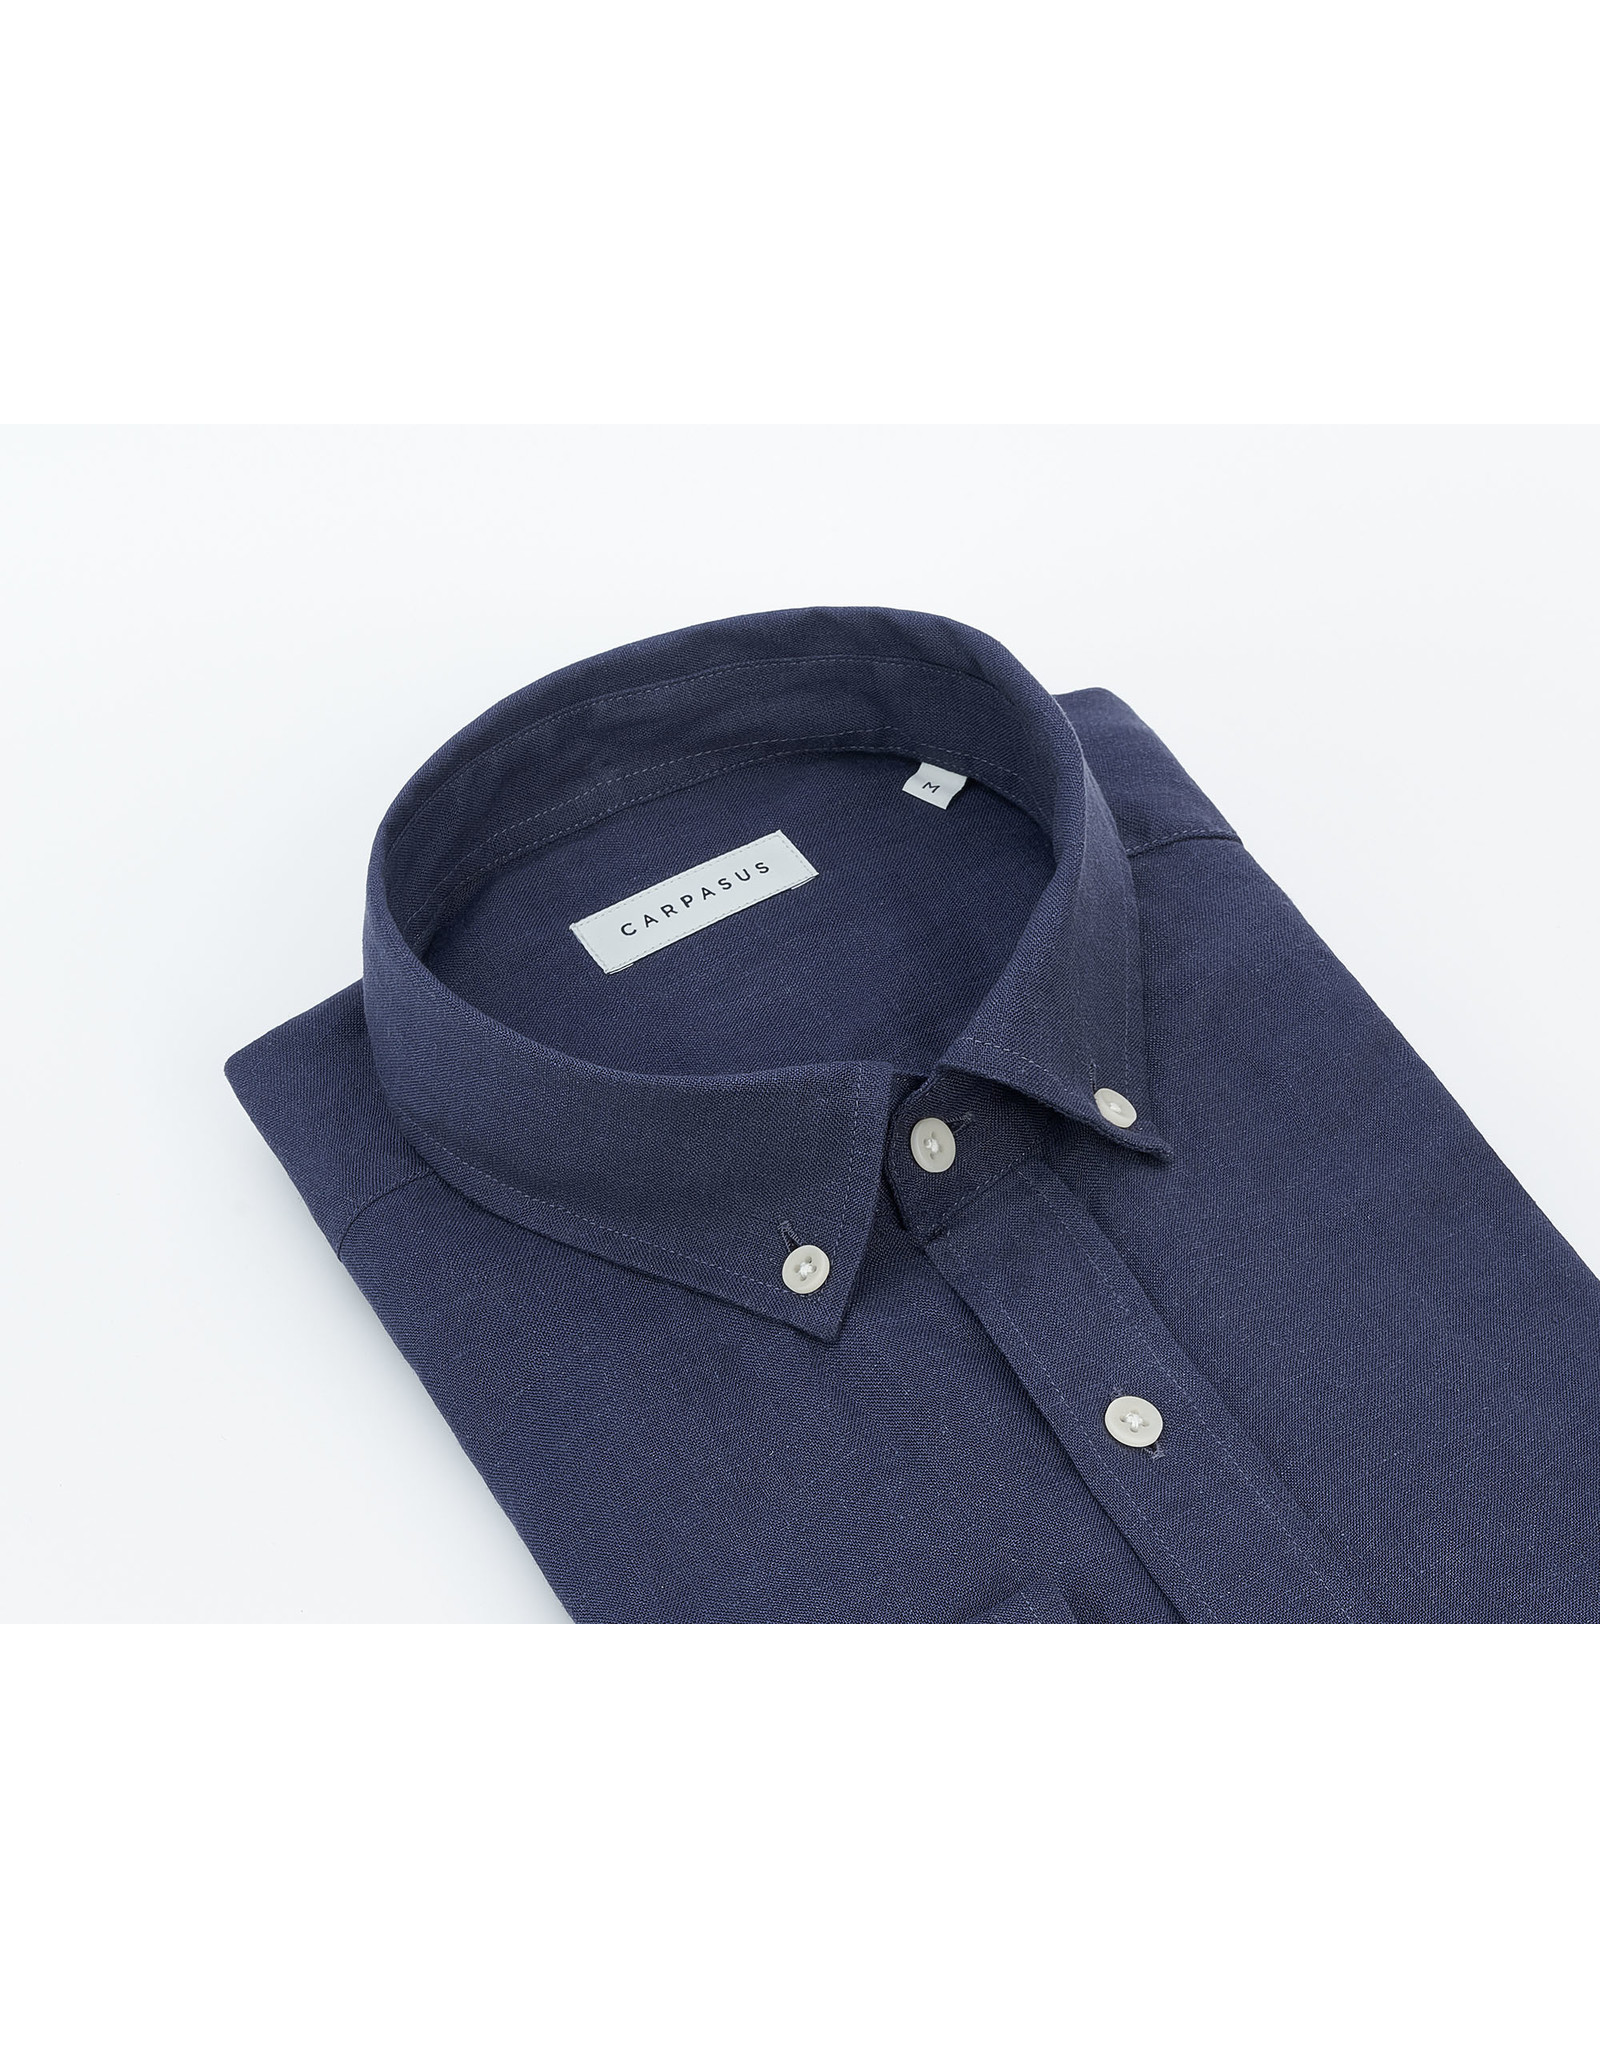 Carpasus linen shirt